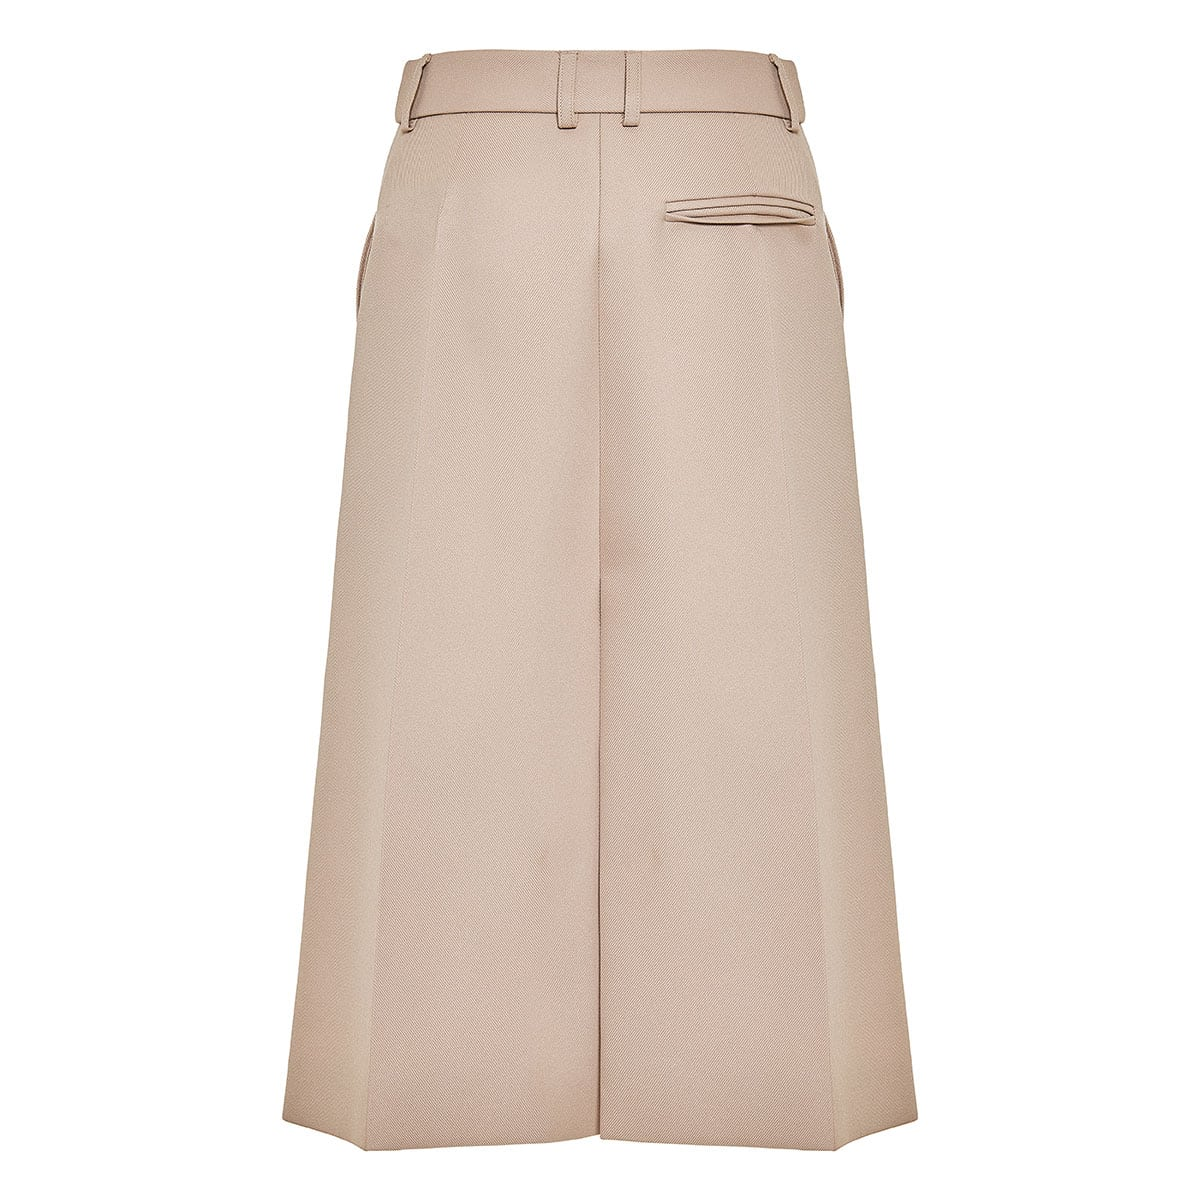 Alisha tailored midi skirt